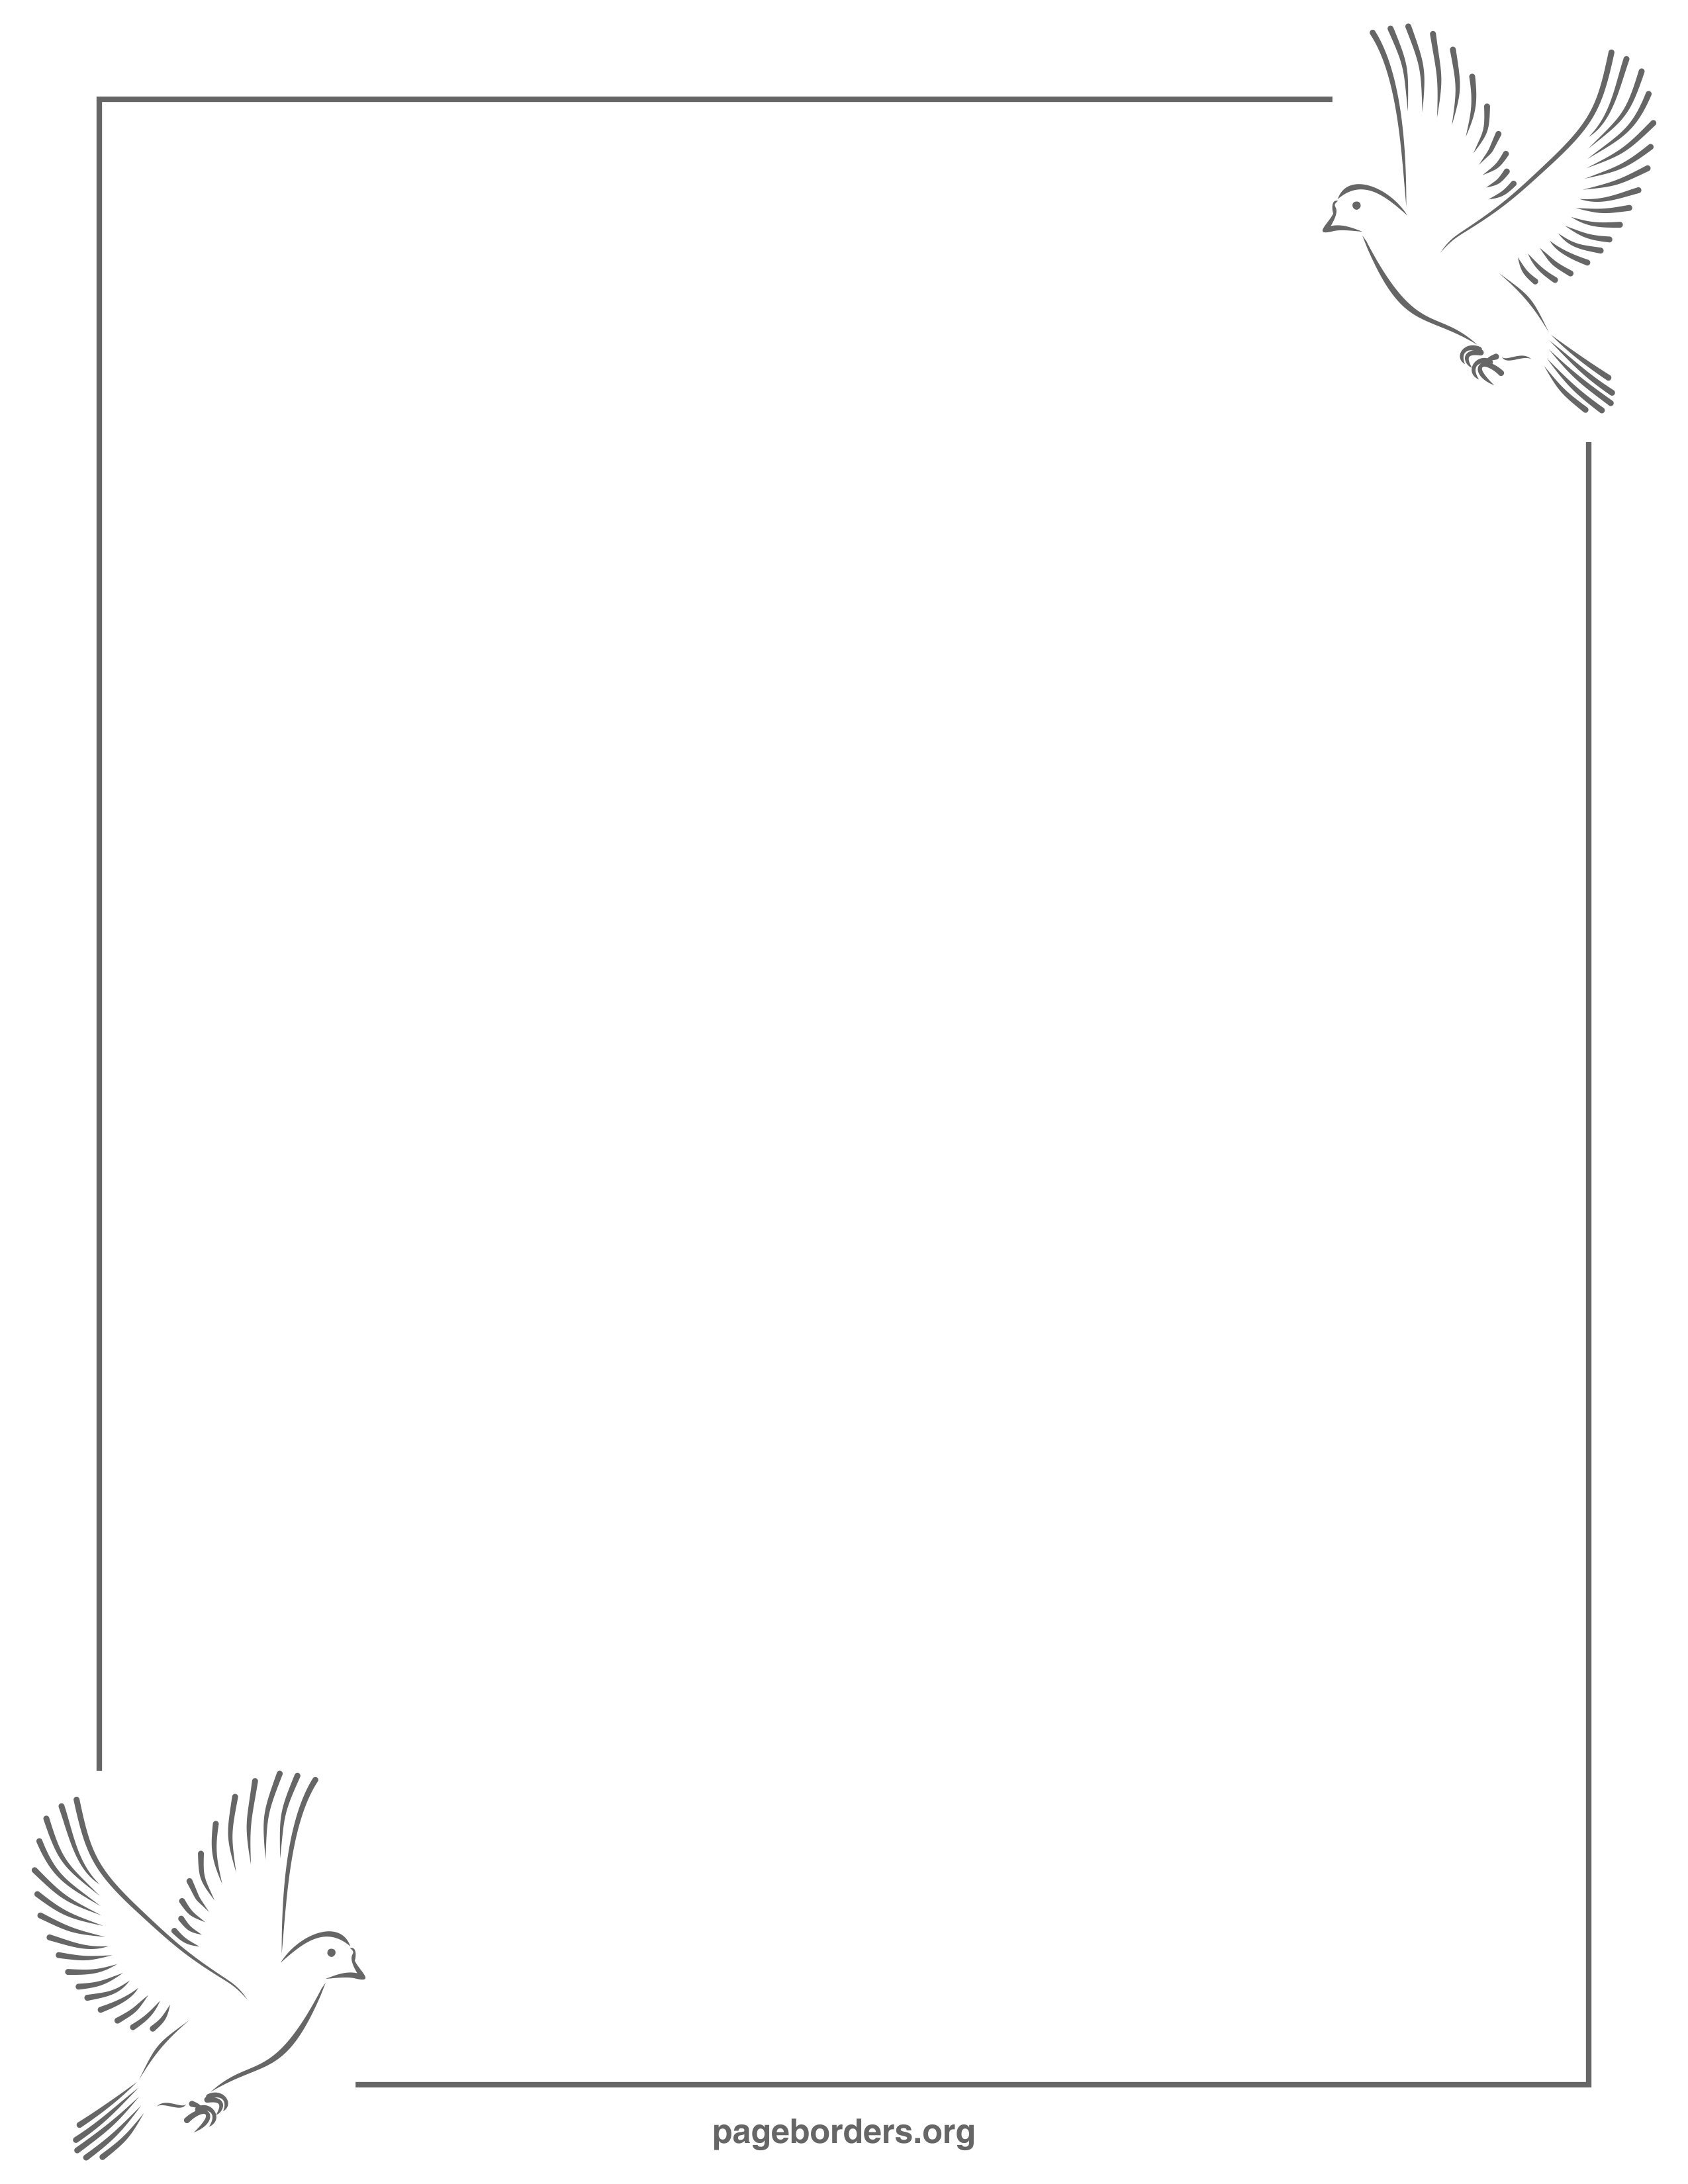 png royalty free Free download clip art. Religious borders clipart